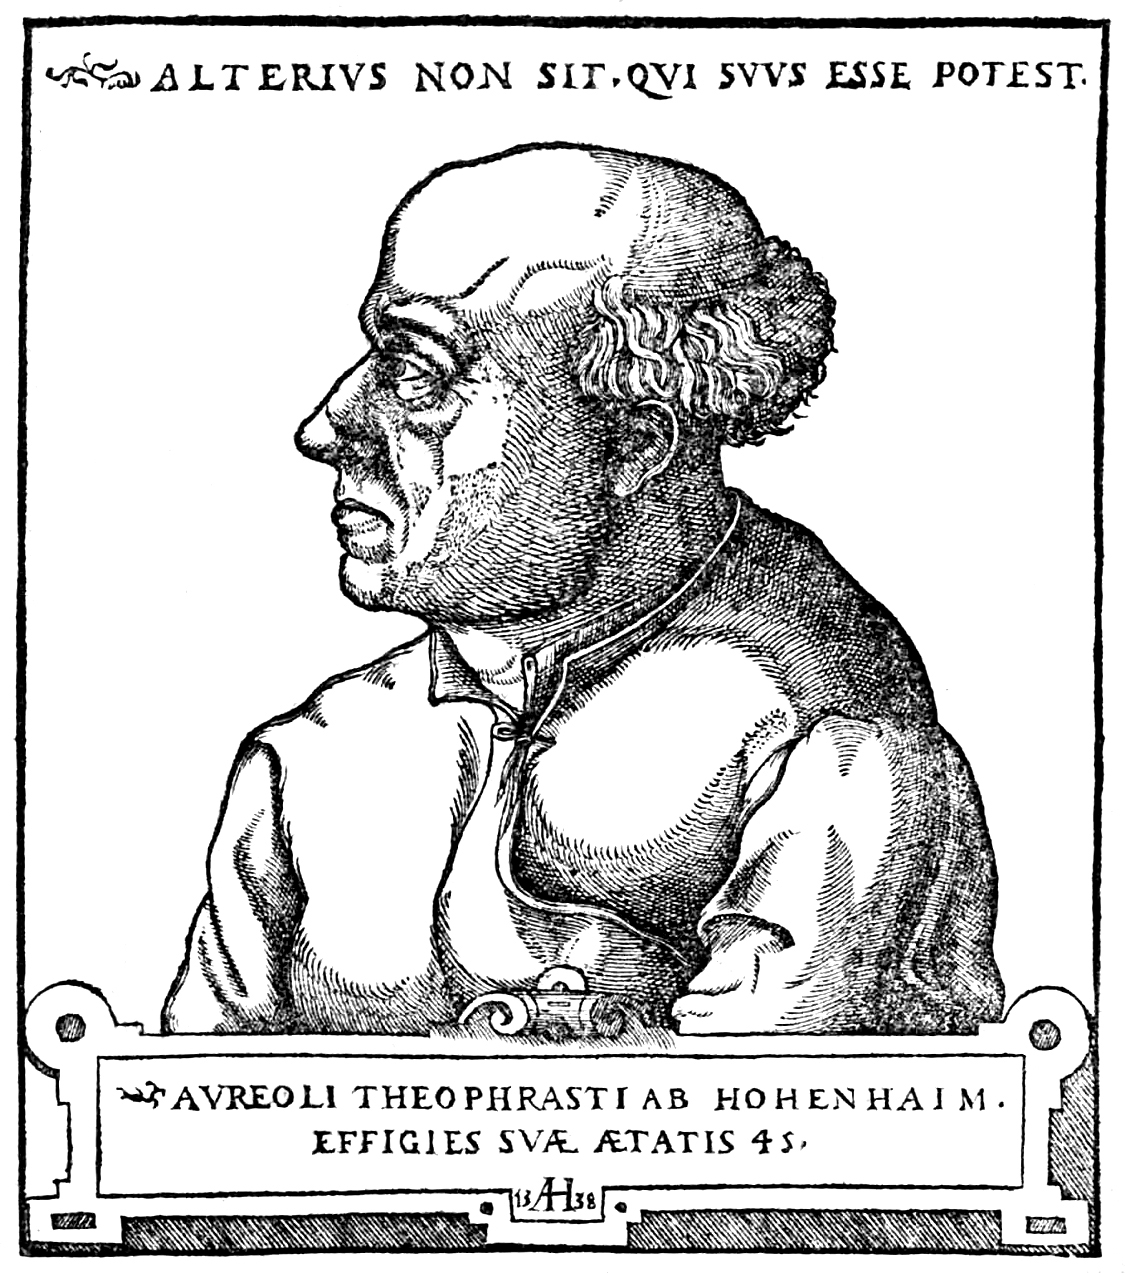 http://upload.wikimedia.org/wikipedia/commons/0/0b/Hirschvogel_Paracelsus.jpg